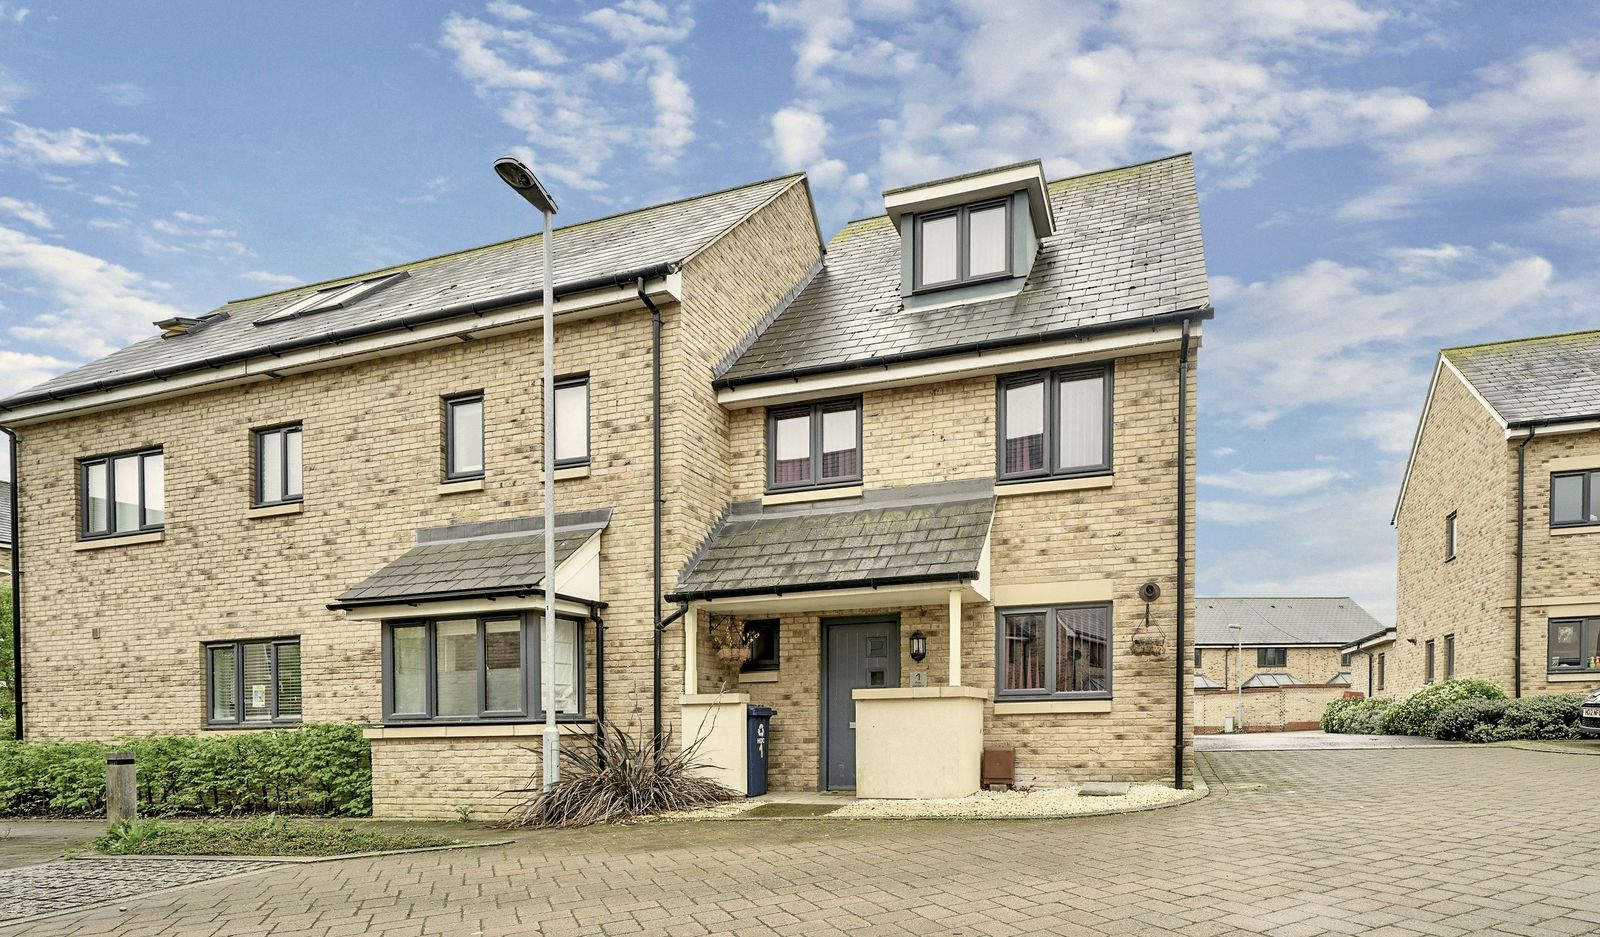 4 bed house for sale in Fox Covert, St. Neots 0